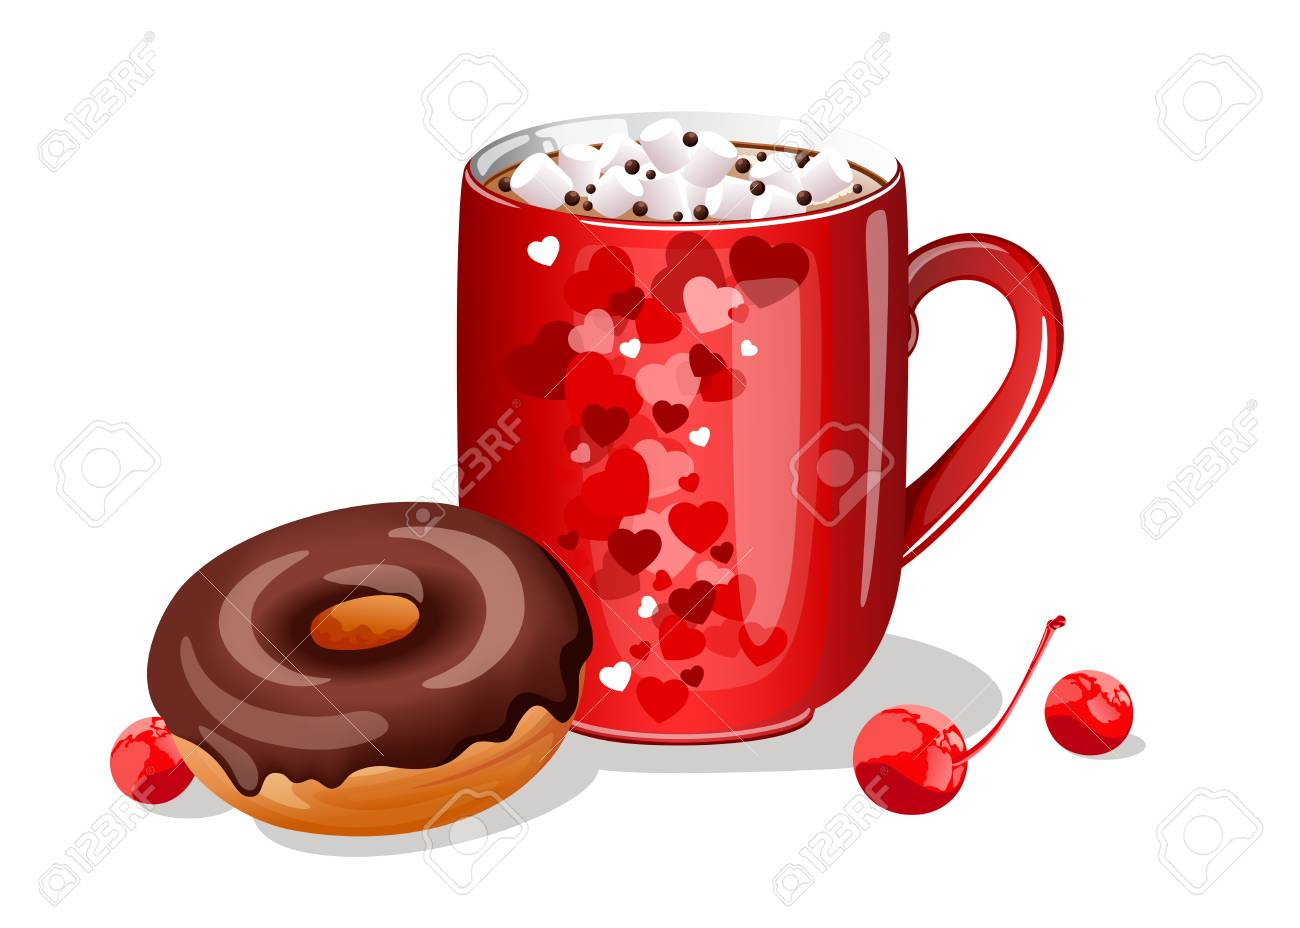 Hot chocolate clipart donut 6 free clip art stock jpg